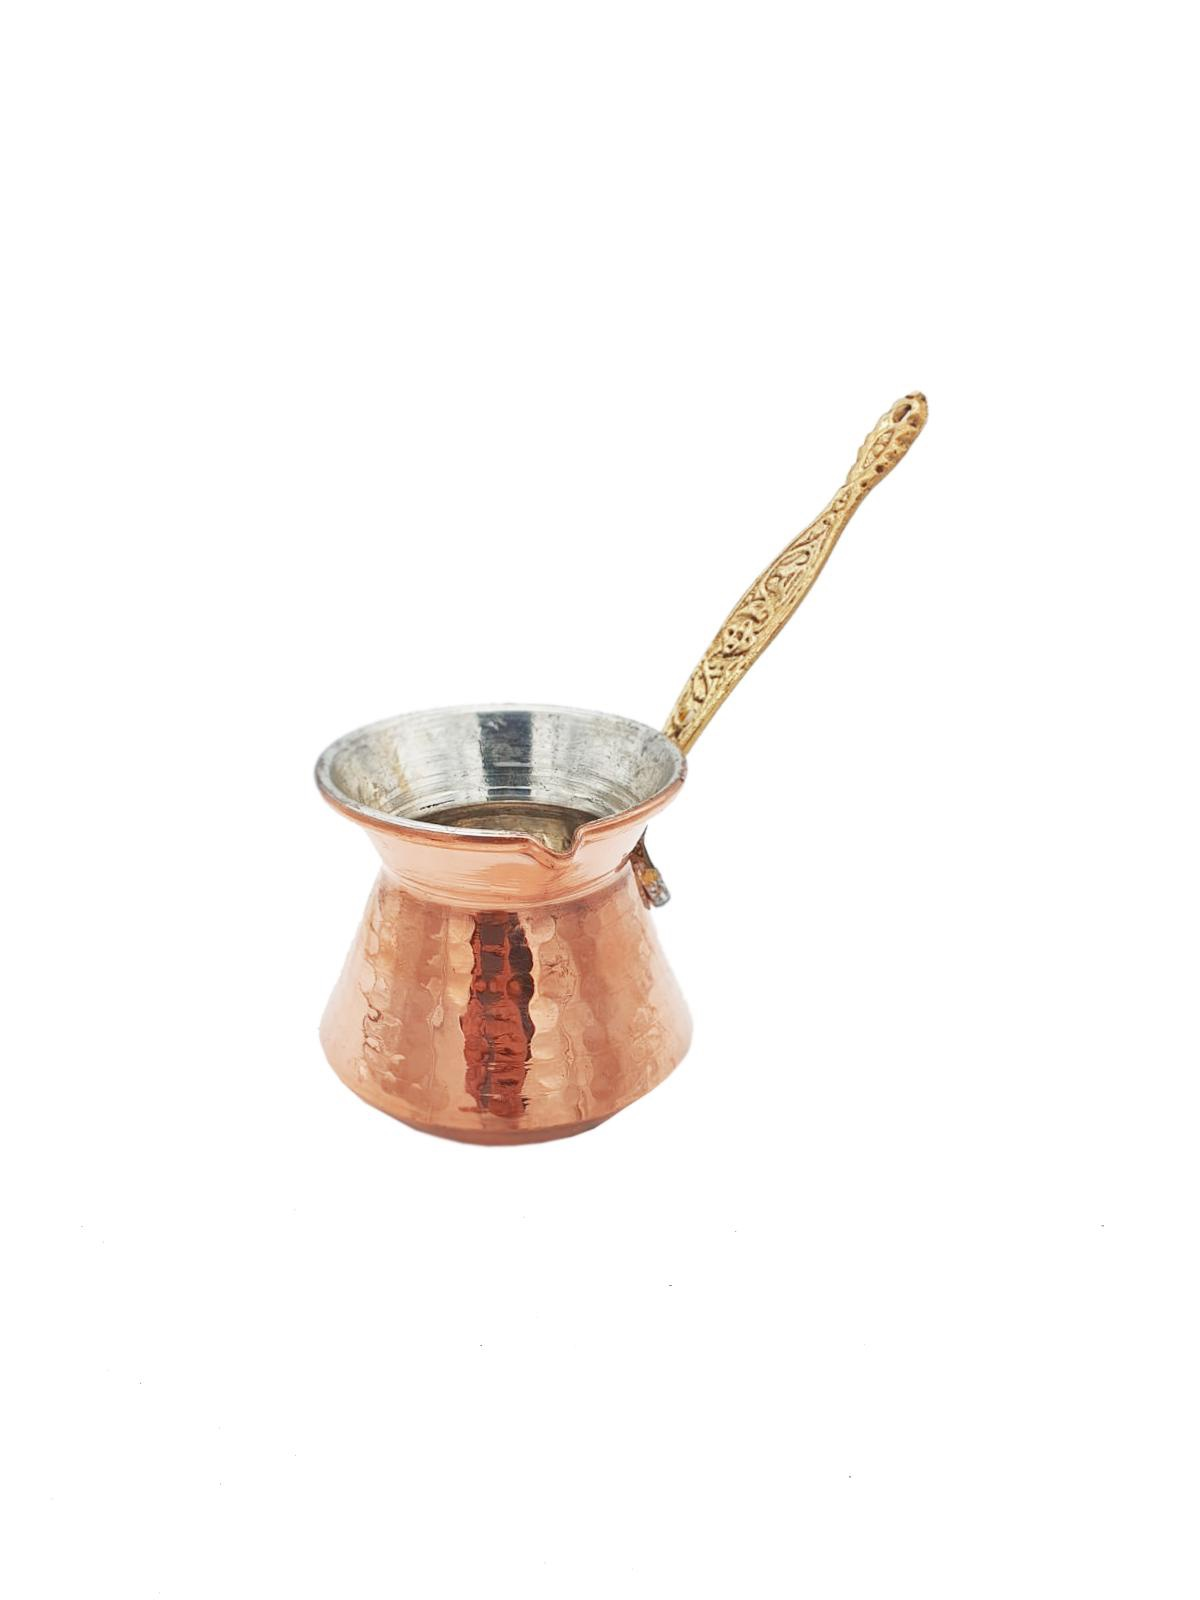 Buy Copper Coffee Pot with Gold Handle - Medium